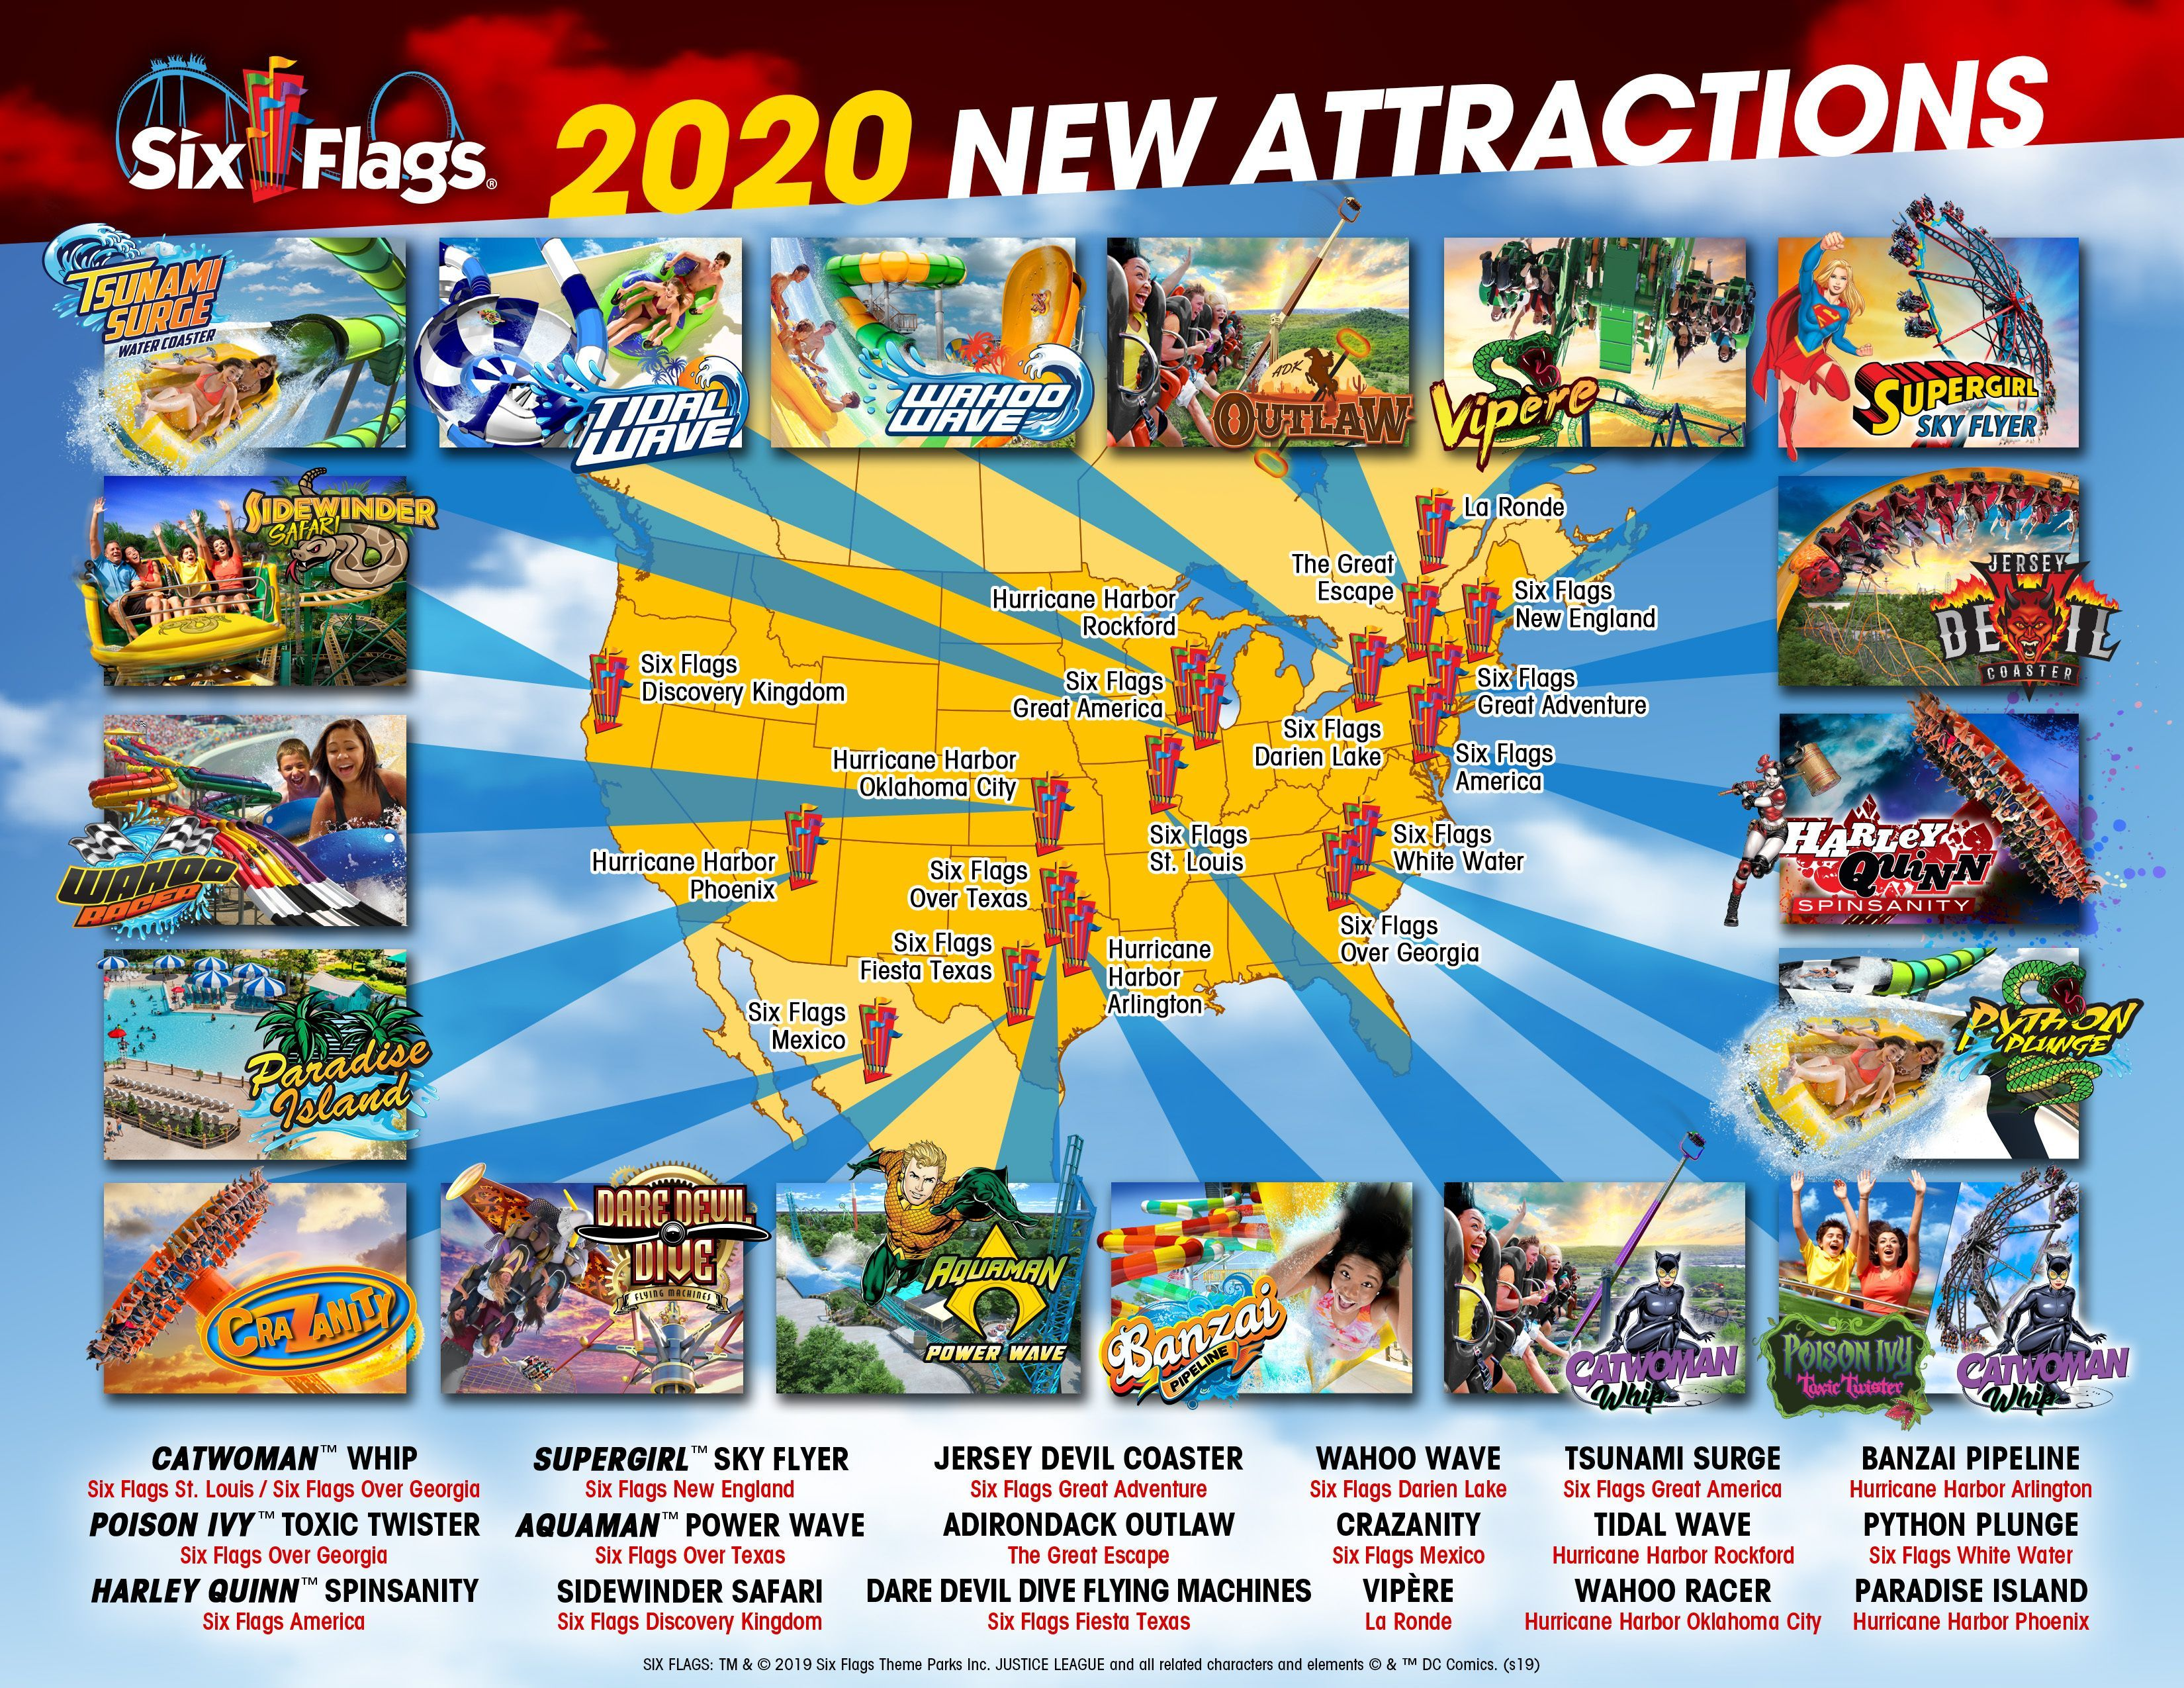 Six Flags Parks Announces New Coasters Waterslides And More Coming In 2020 Waterslides Six Flags Darien Lake